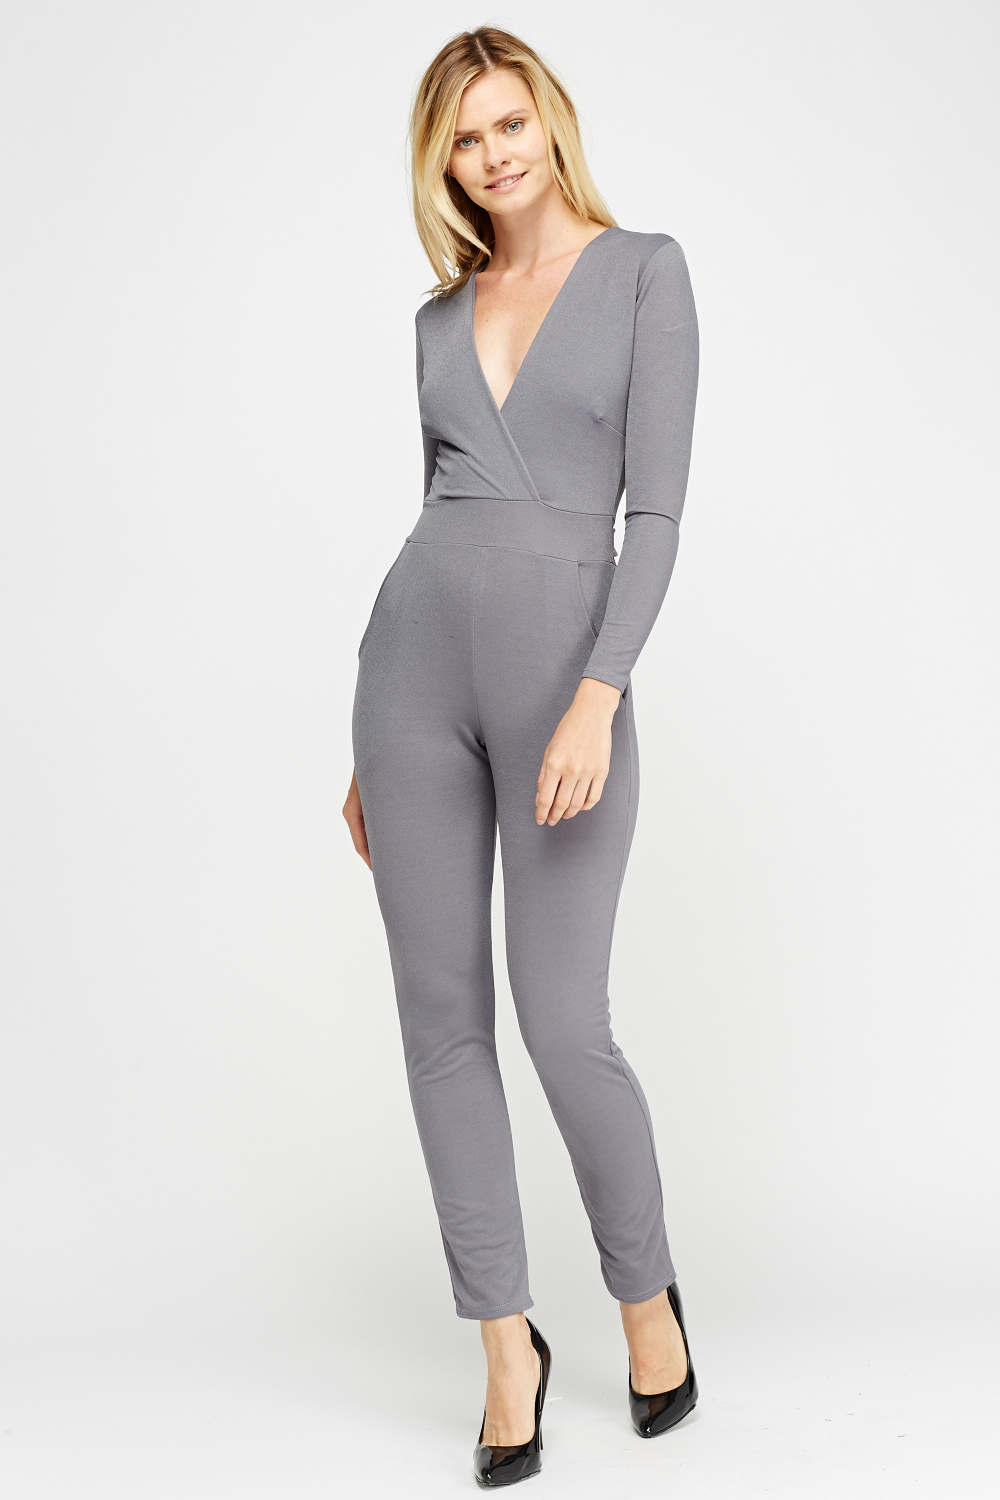 More Details Likely Isla Strapless Tie-Waist Cropped Jumpsuit Details Likely